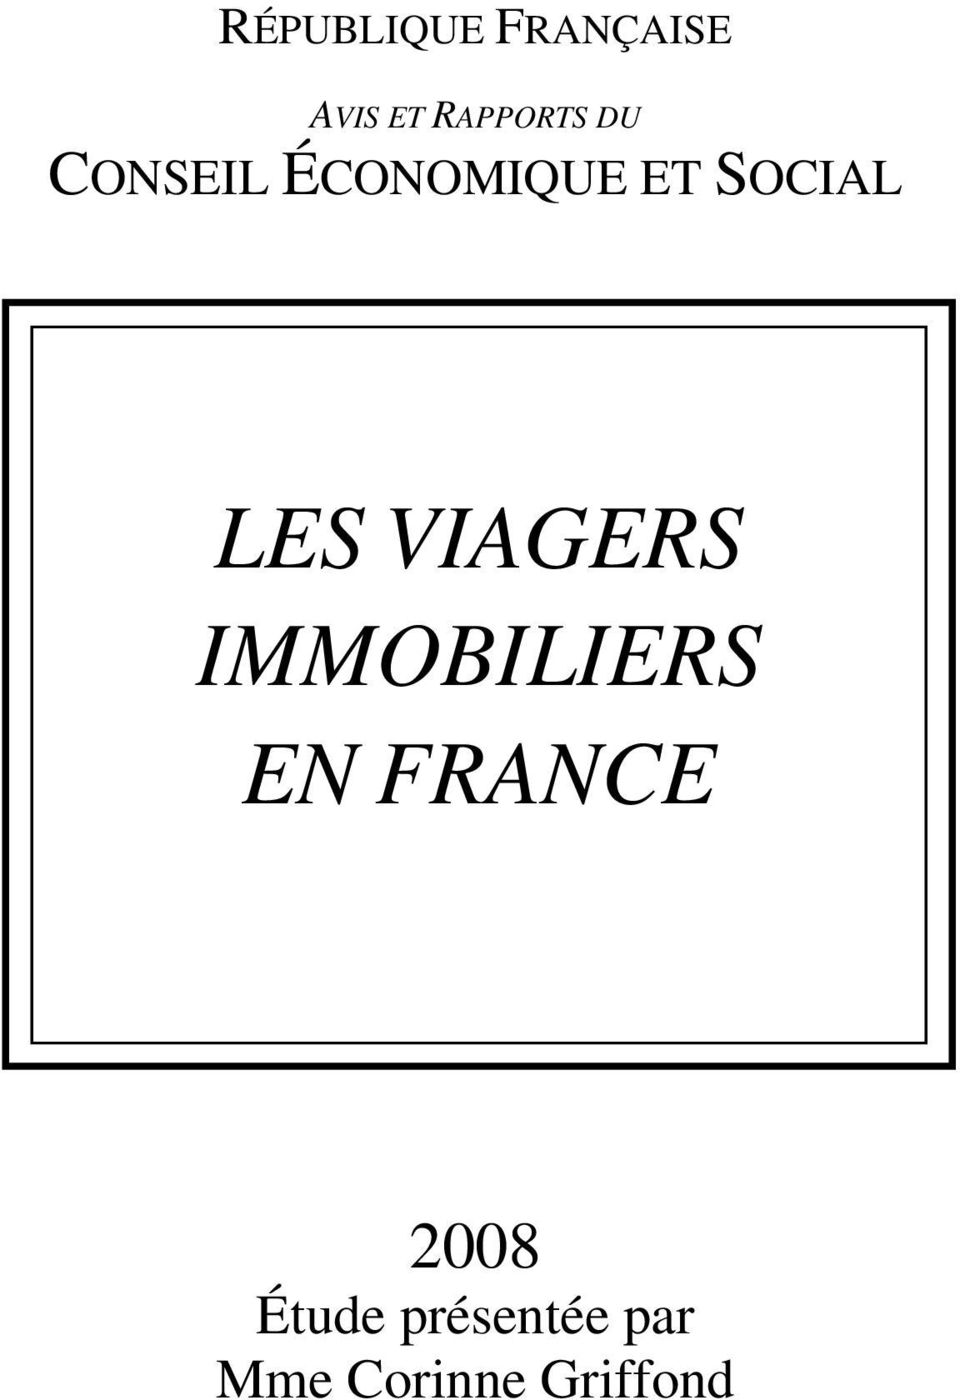 VIAGERS IMMOBILIERS EN FRANCE 2008